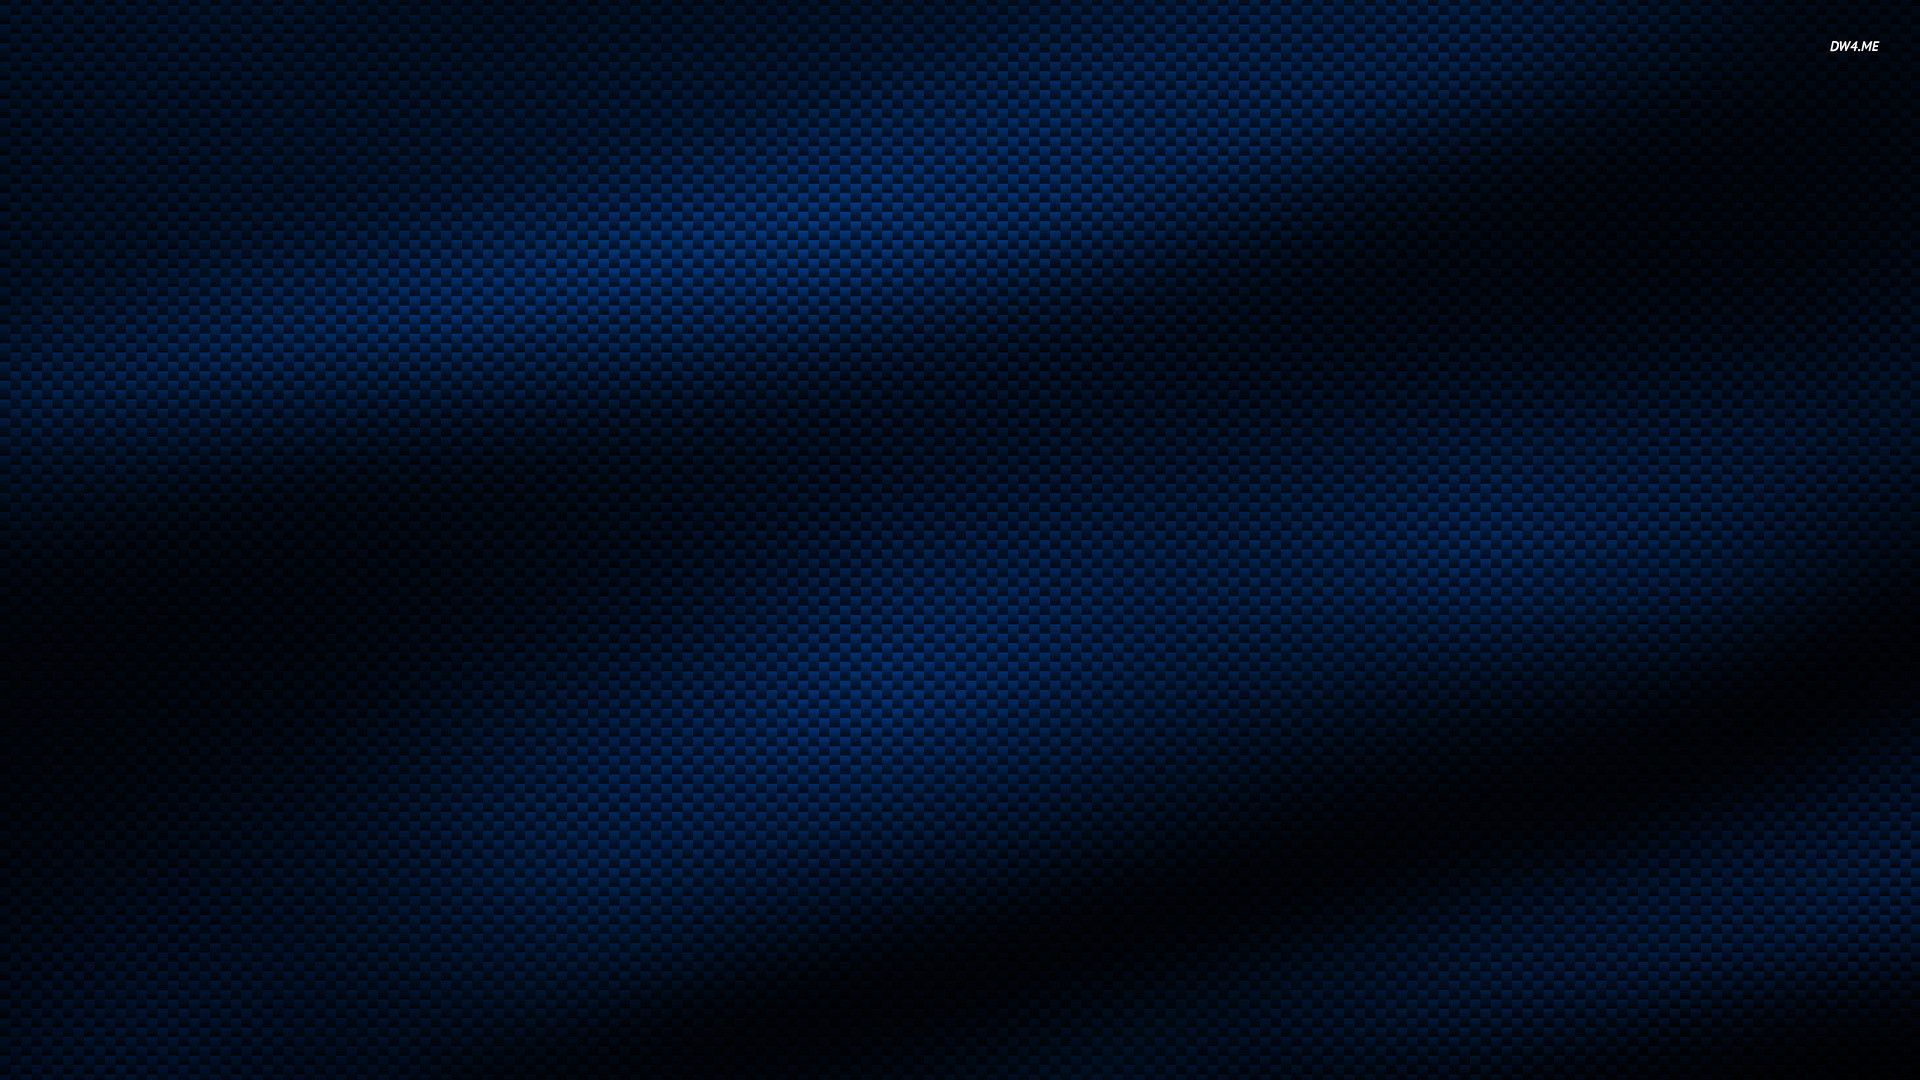 Blue Carbon Wallpaper